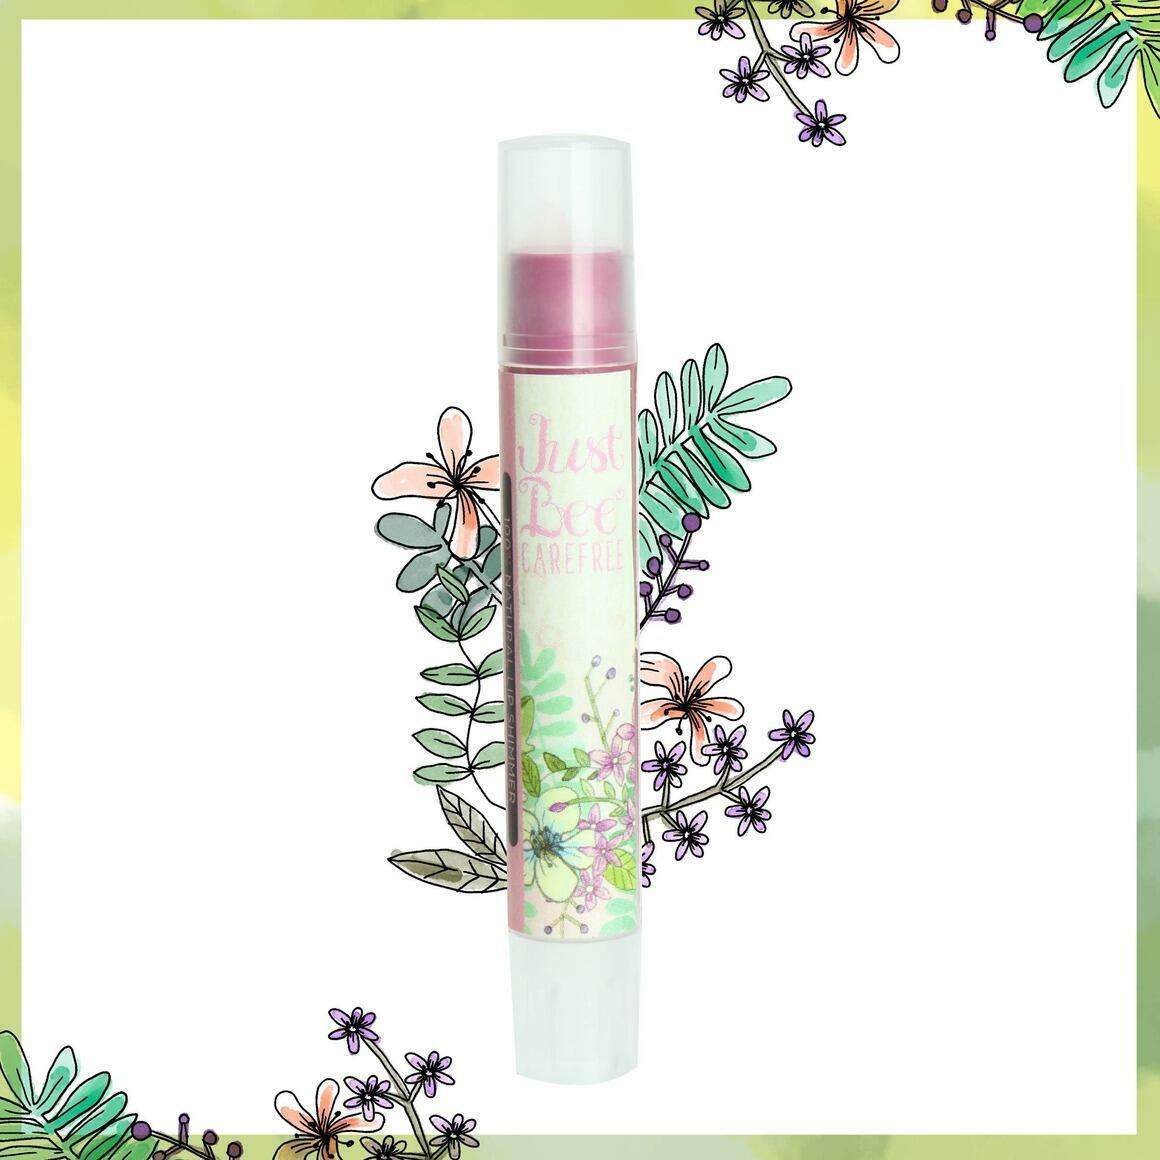 Just Bee Carefree - Lip Shimmer - Refill | Trada Marketplace